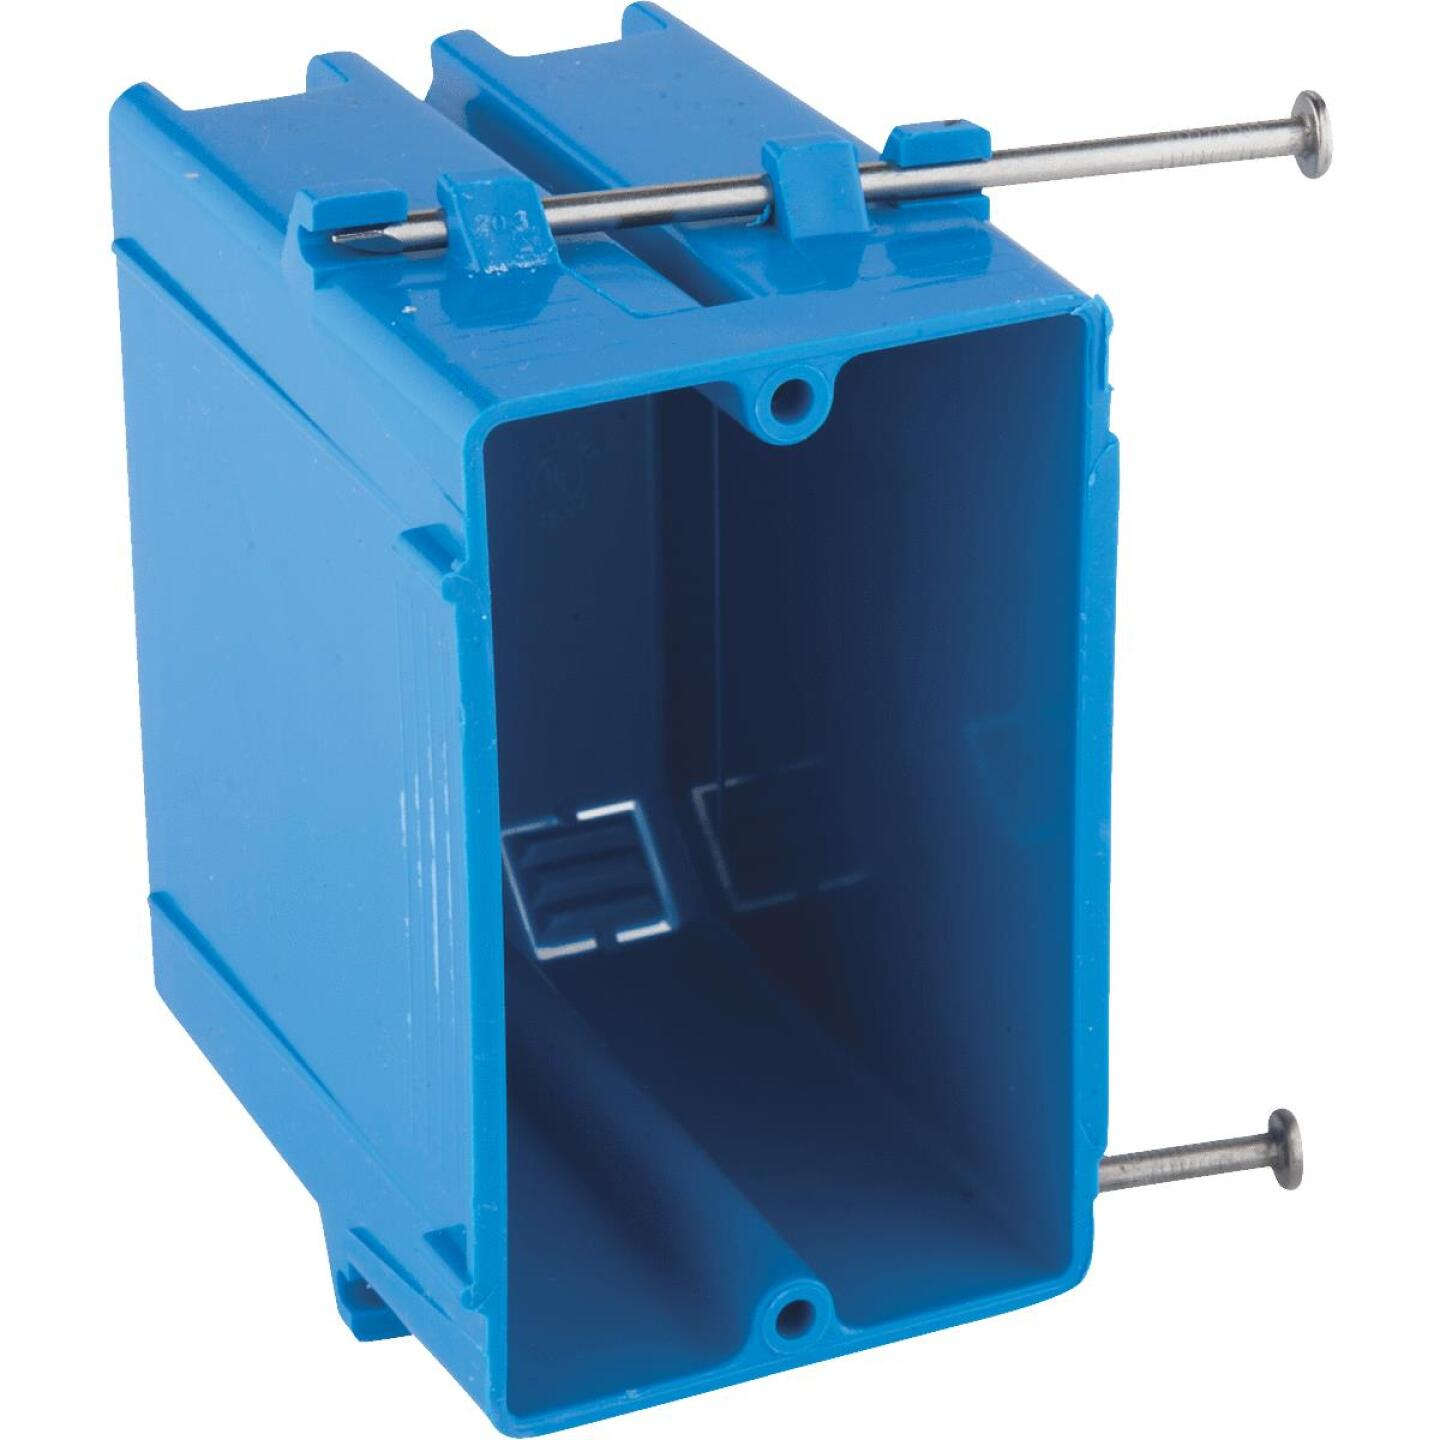 Carlon 1-Gang PVC Molded Wall Switch Box Image 2